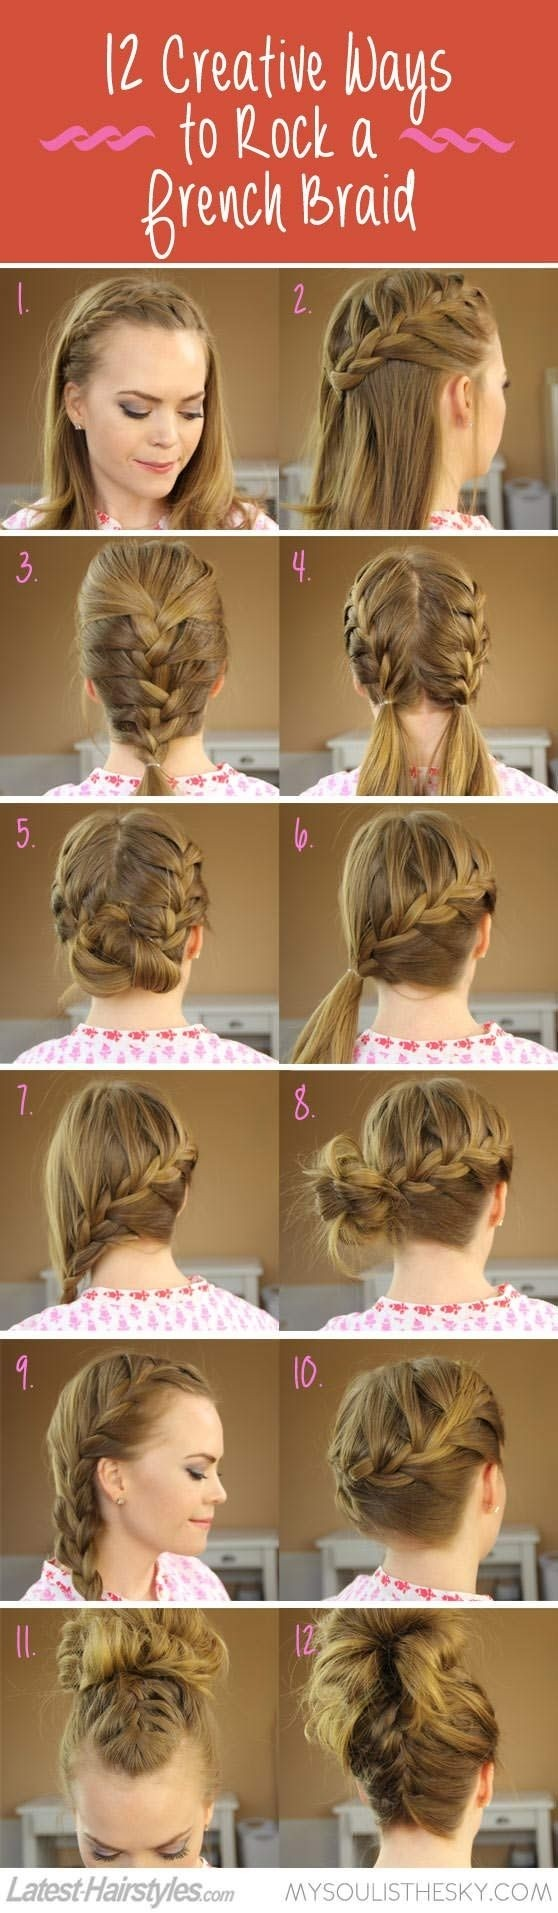 Creative French Braided Hairstyles Ideas